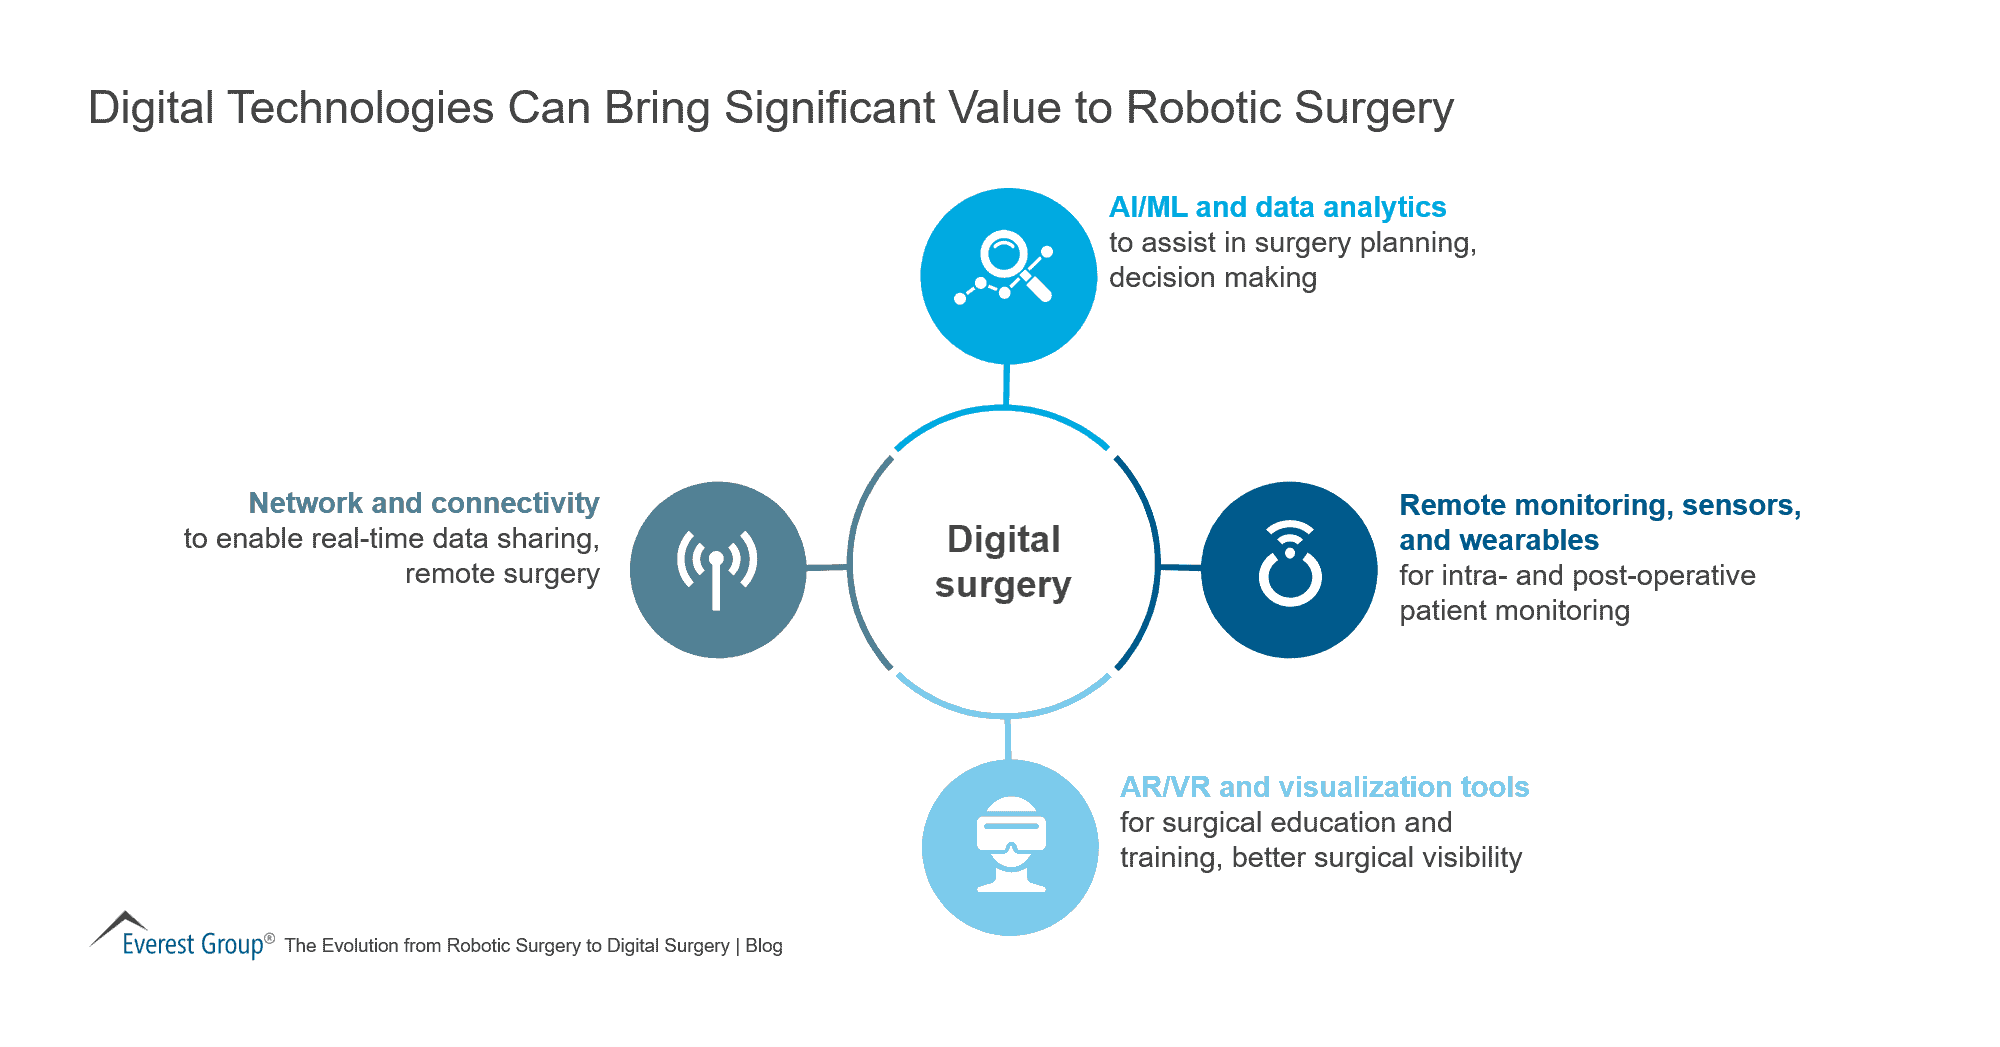 Digital Technologies Can Bring Significant Value to Robotic Surgery